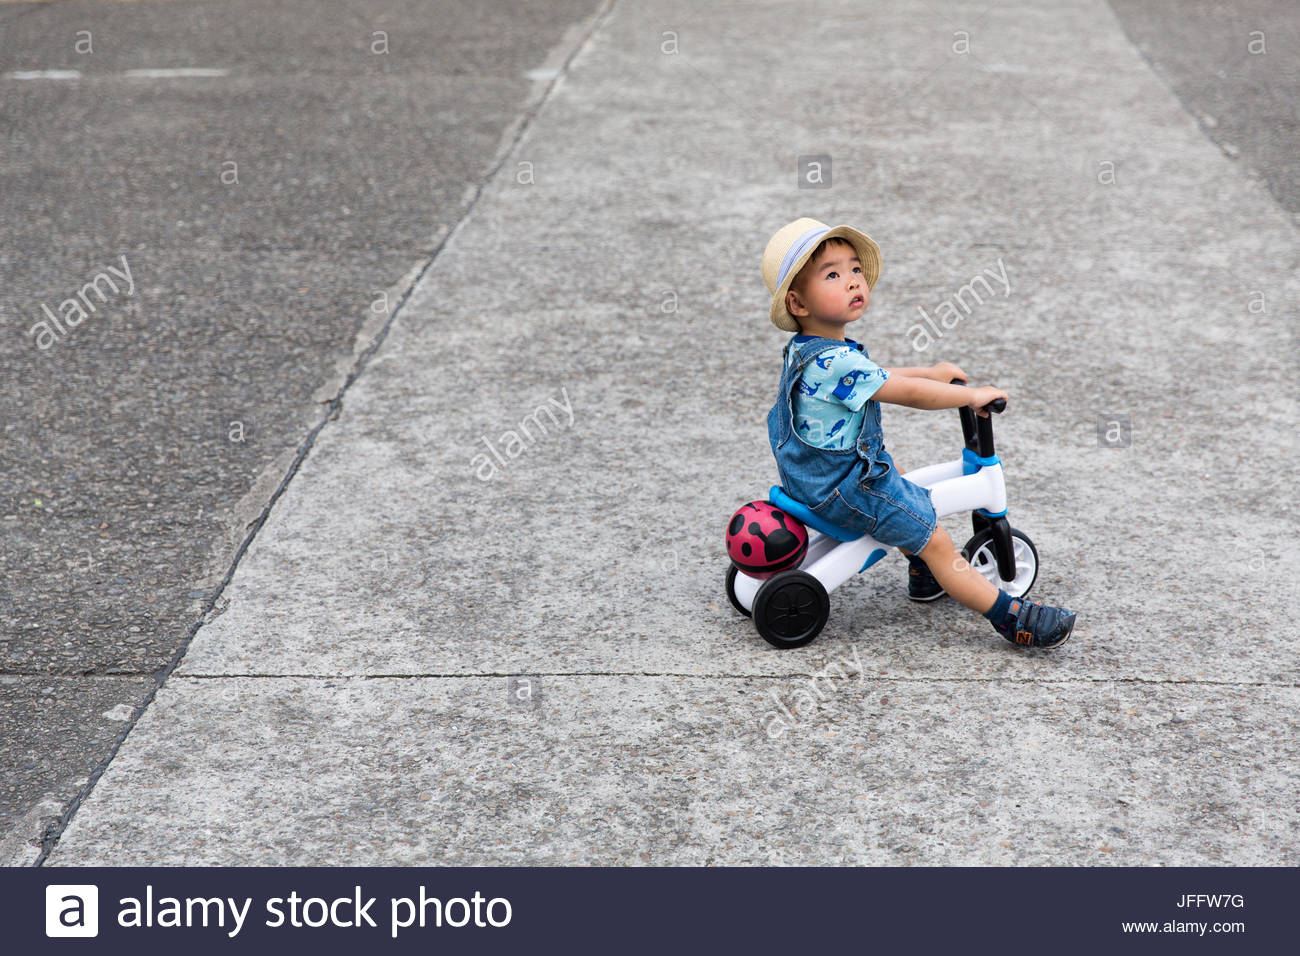 A child riding a three wheeled scooter in a park in Taipei. - Stock Image